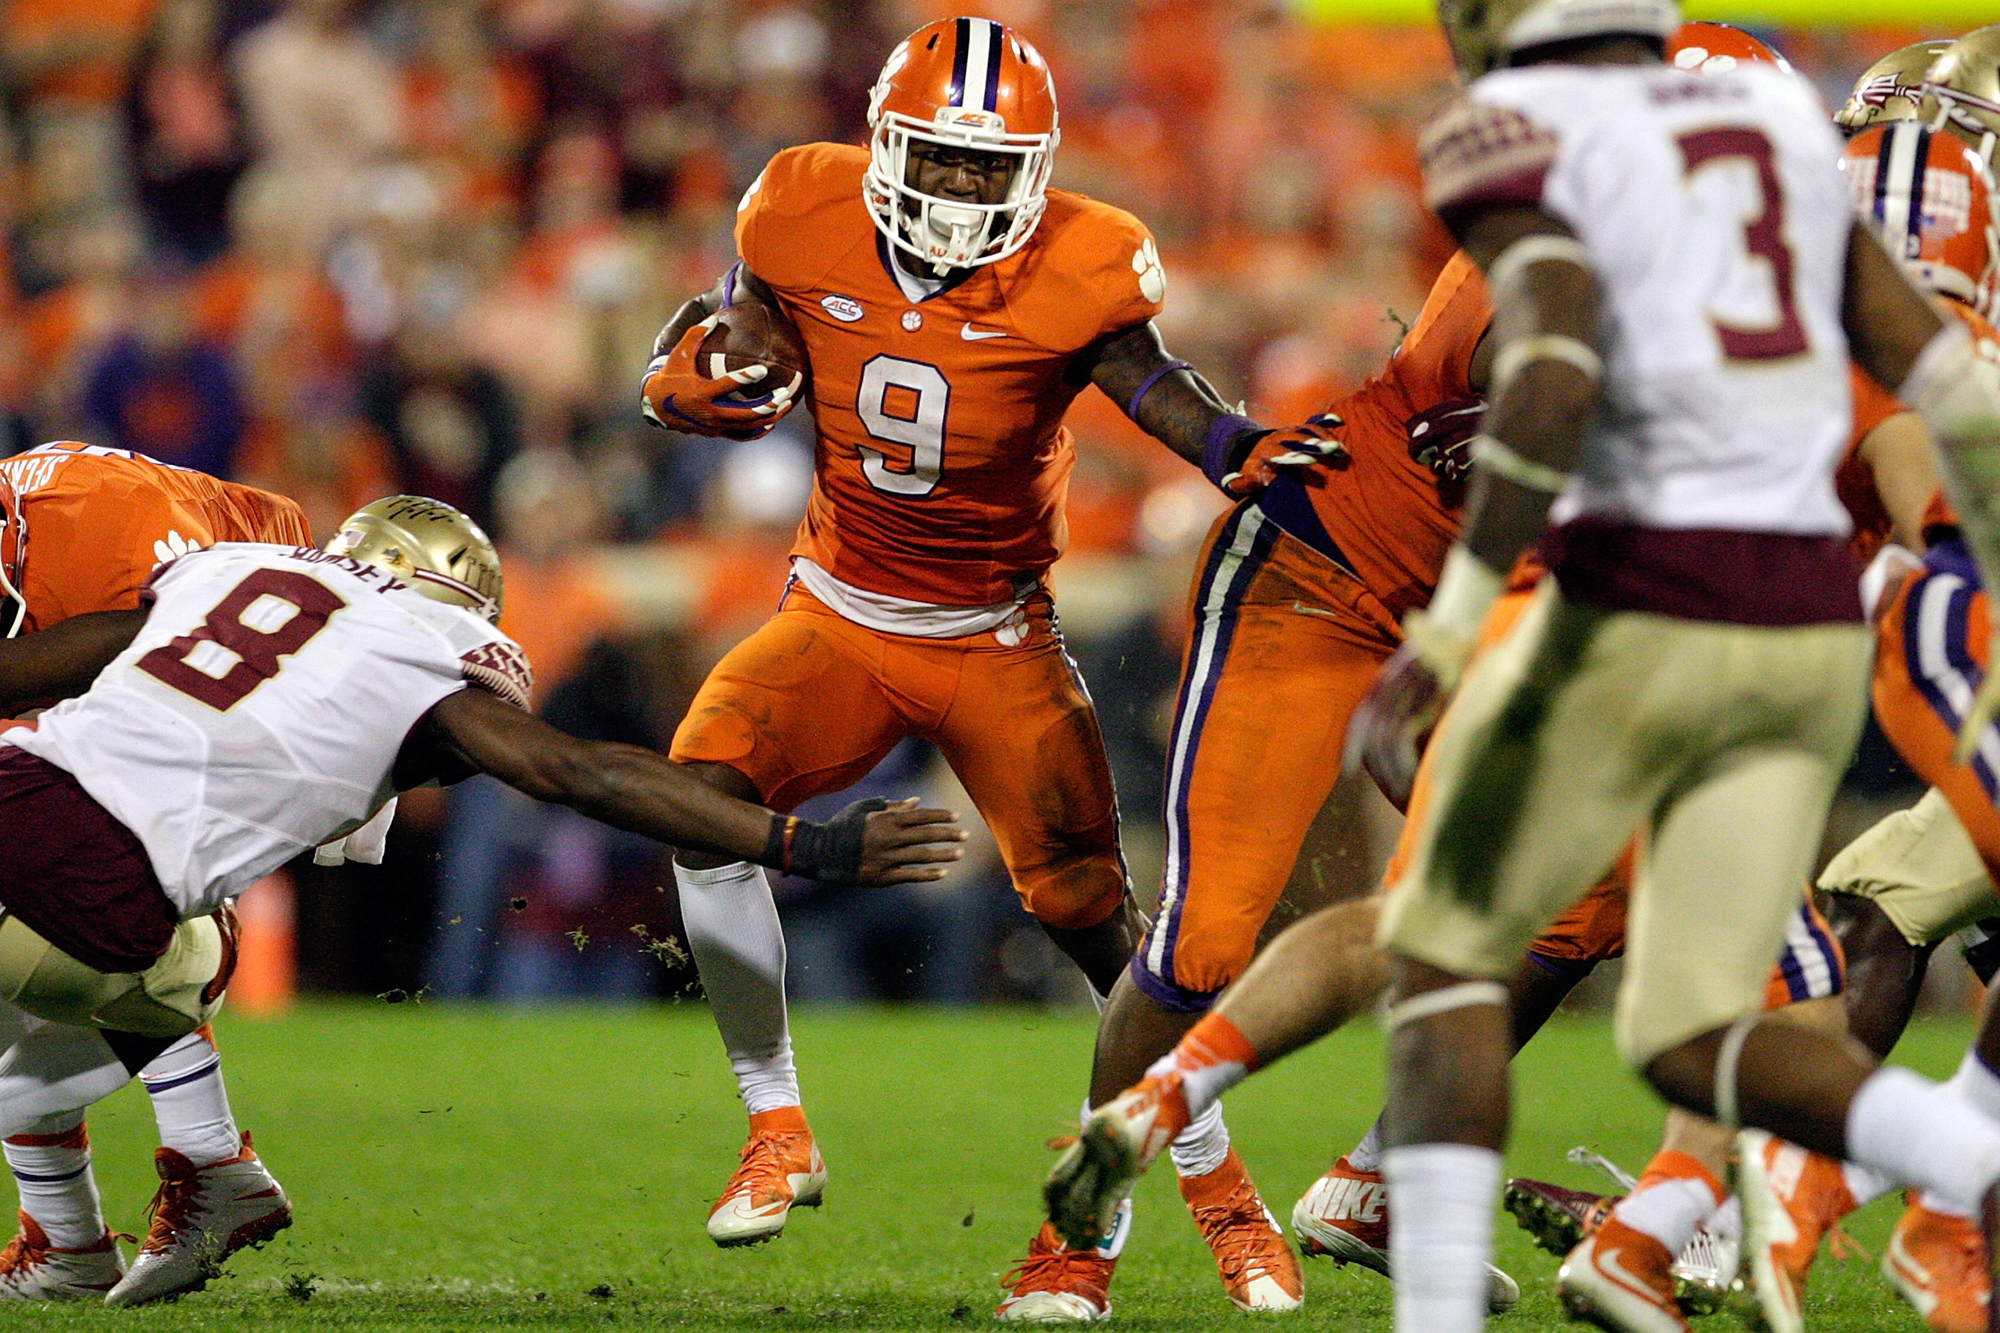 Wayne Gallman #9 of the Clemson Tigers rushes the ball during the game against the Florida State Seminoles at Memorial Stadium on November 7, 2015 in Clemson, South Carolina.